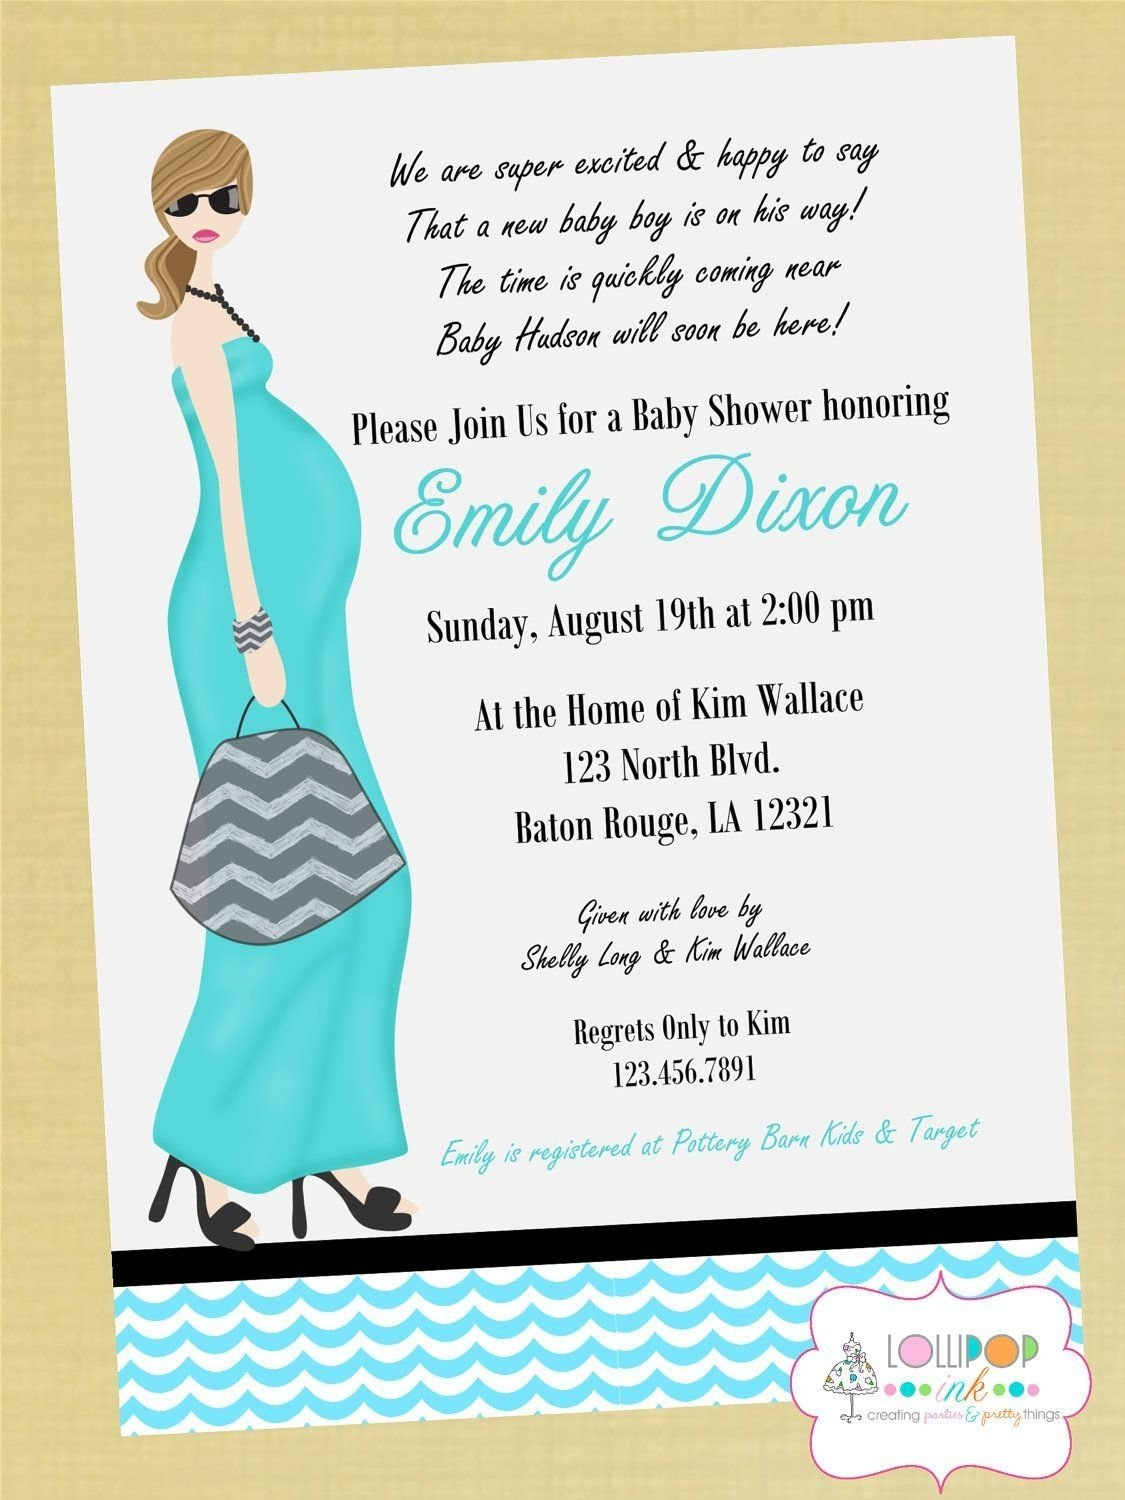 10 Attractive Invitation Ideas For Baby Shower baby shower invite ideas incredible for invitations to create your 2020